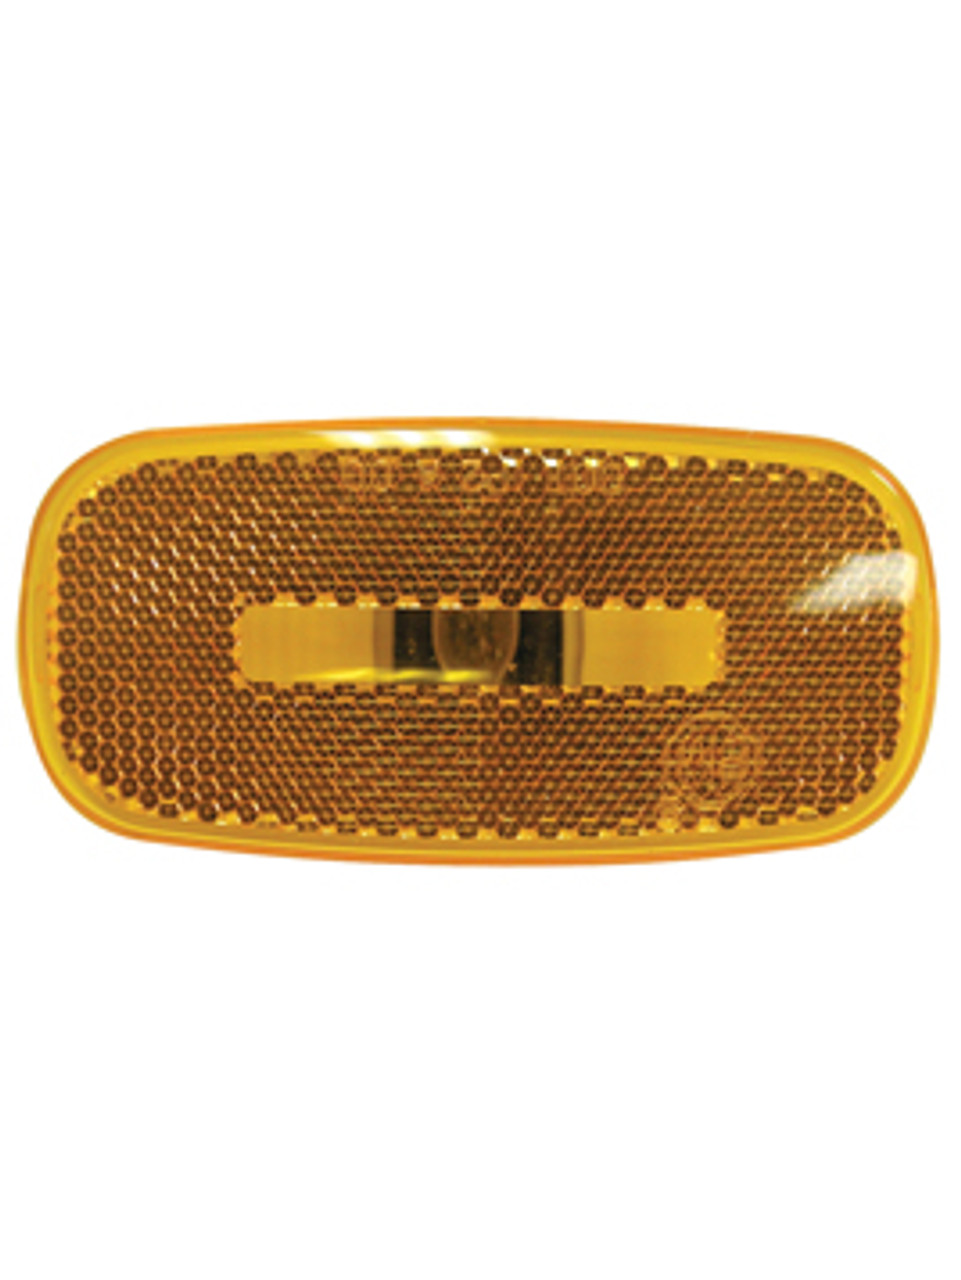 2549-15A --- Rectangular Clearance/Side Marker Lens with Reflector